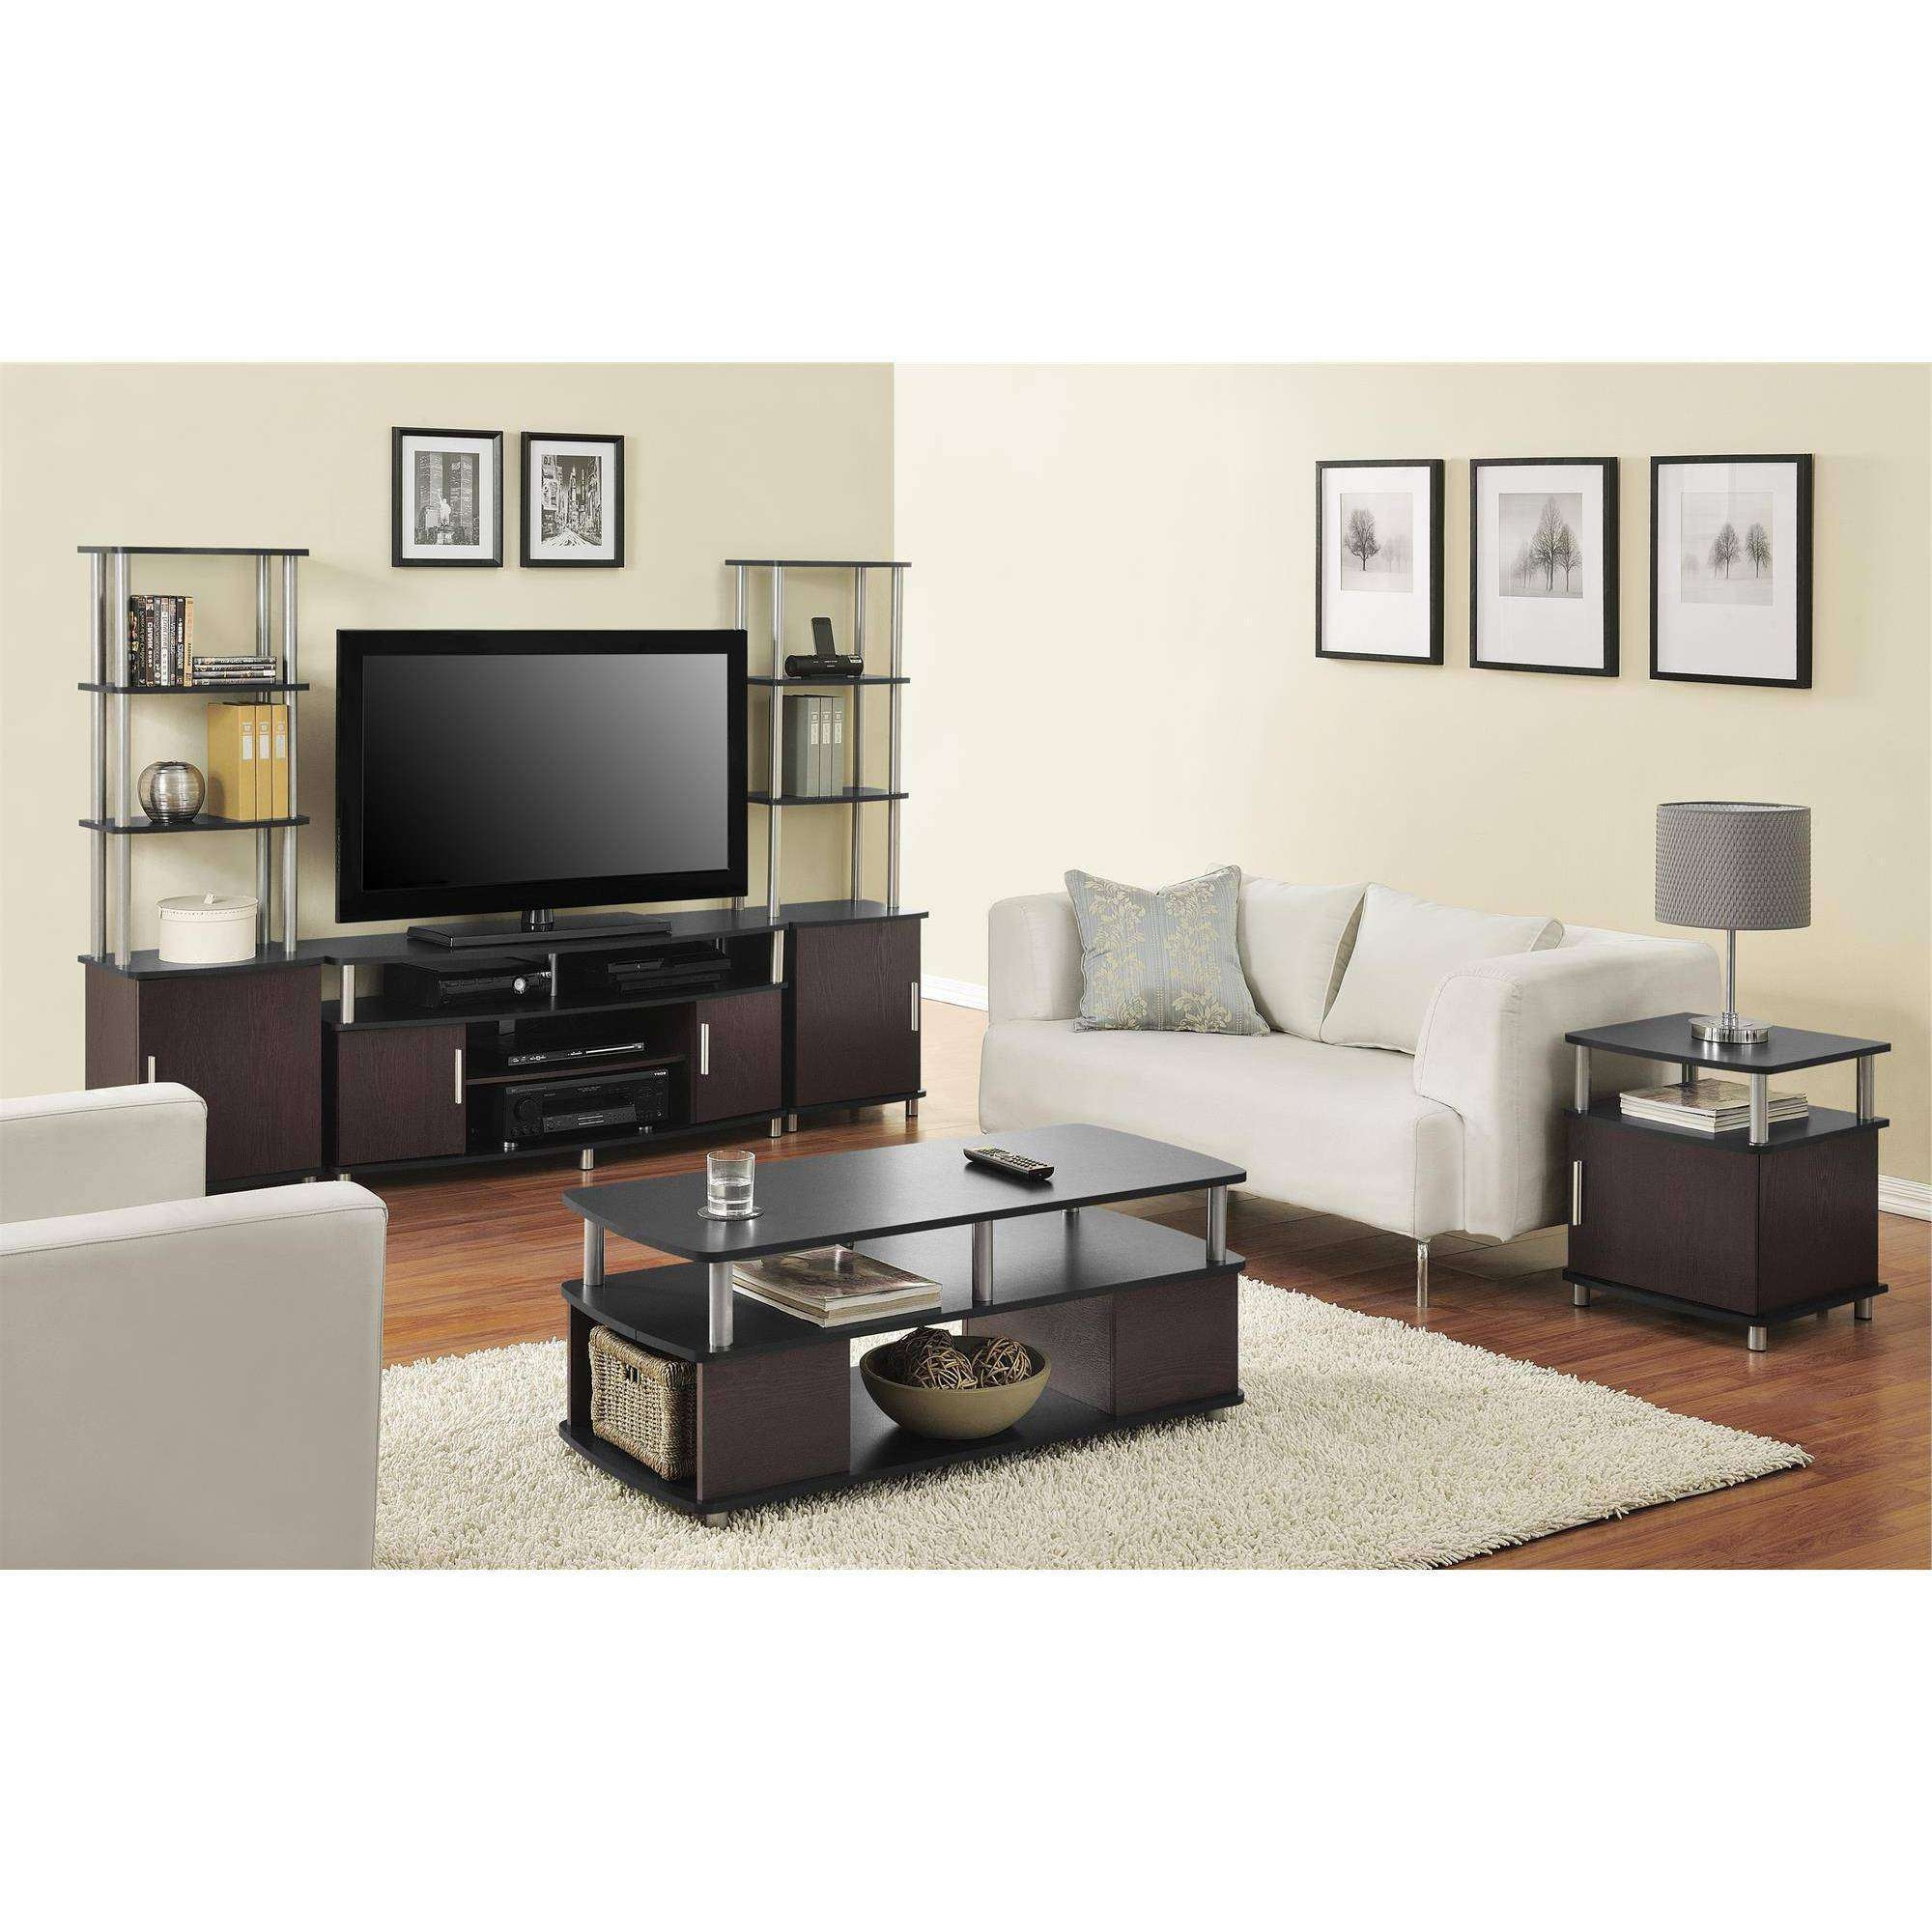 Coffee Table : Whalen Brown Cherry In Flat Panel Tv Stand For Tvs Pertaining To Coffee Tables And Tv Stands Matching (View 6 of 15)